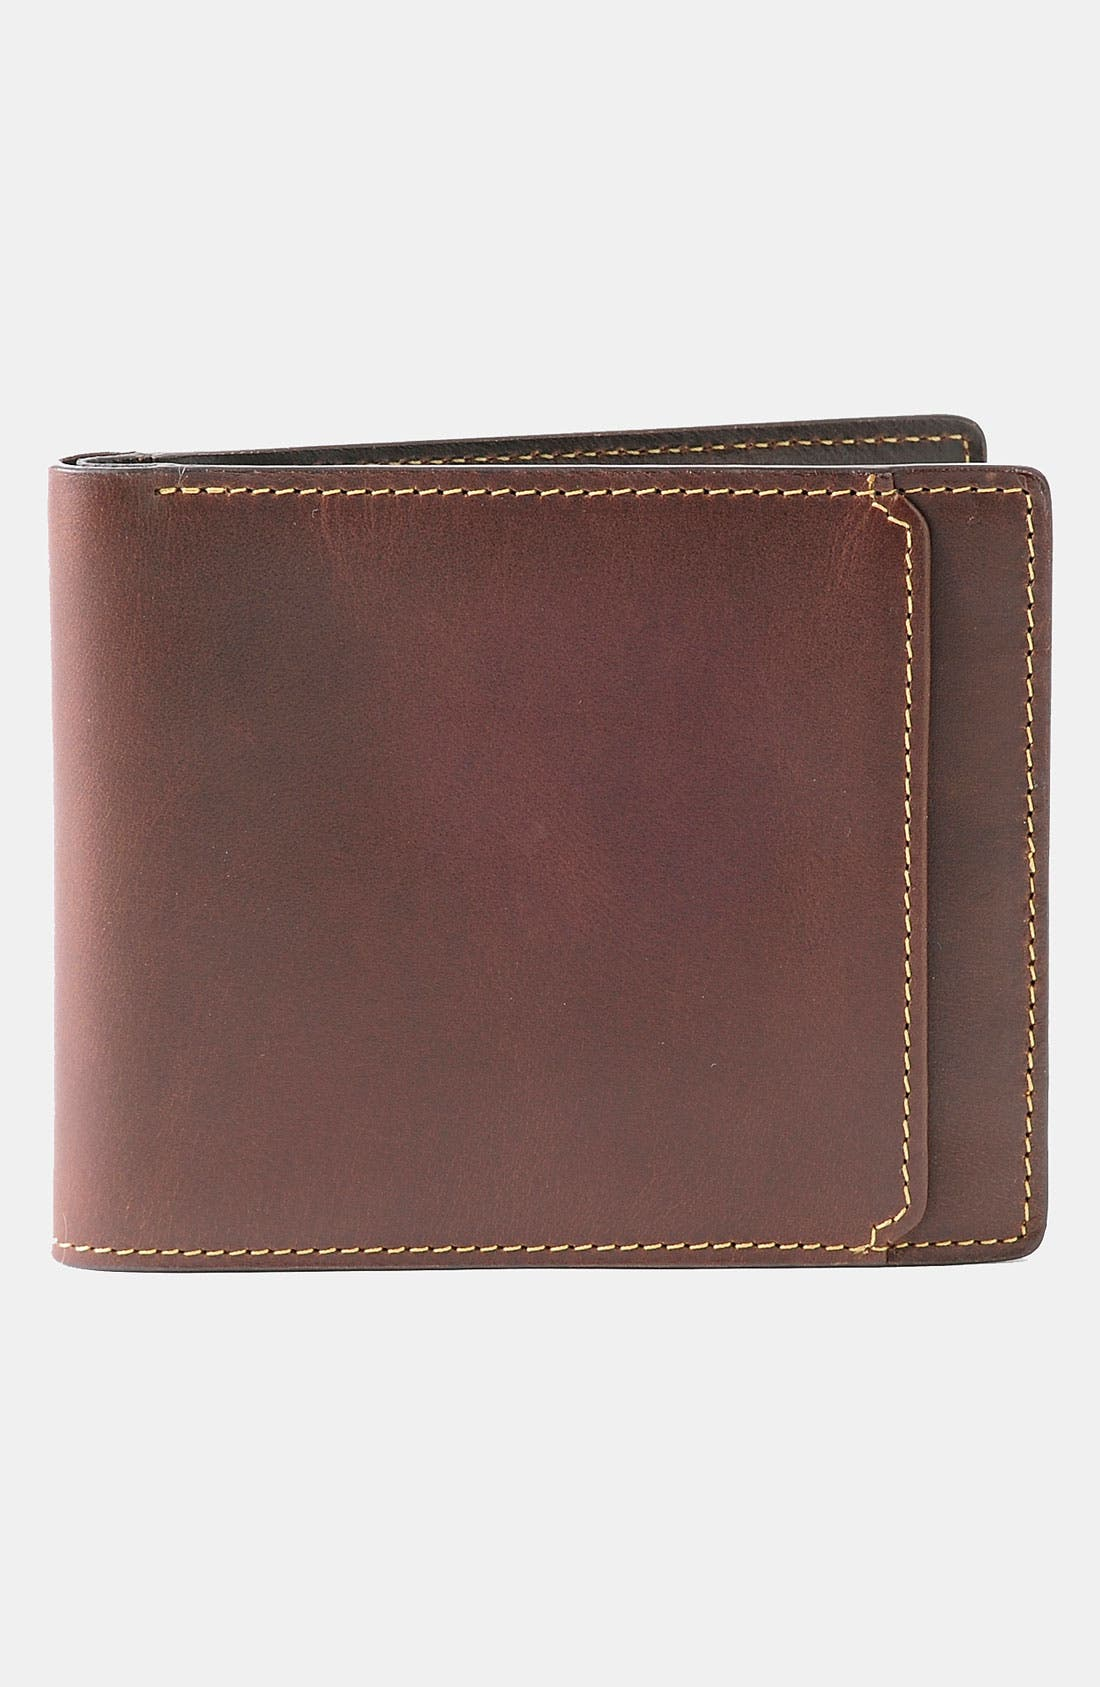 'Bryant' RFID Blocker Slimfold Wallet,                             Main thumbnail 1, color,